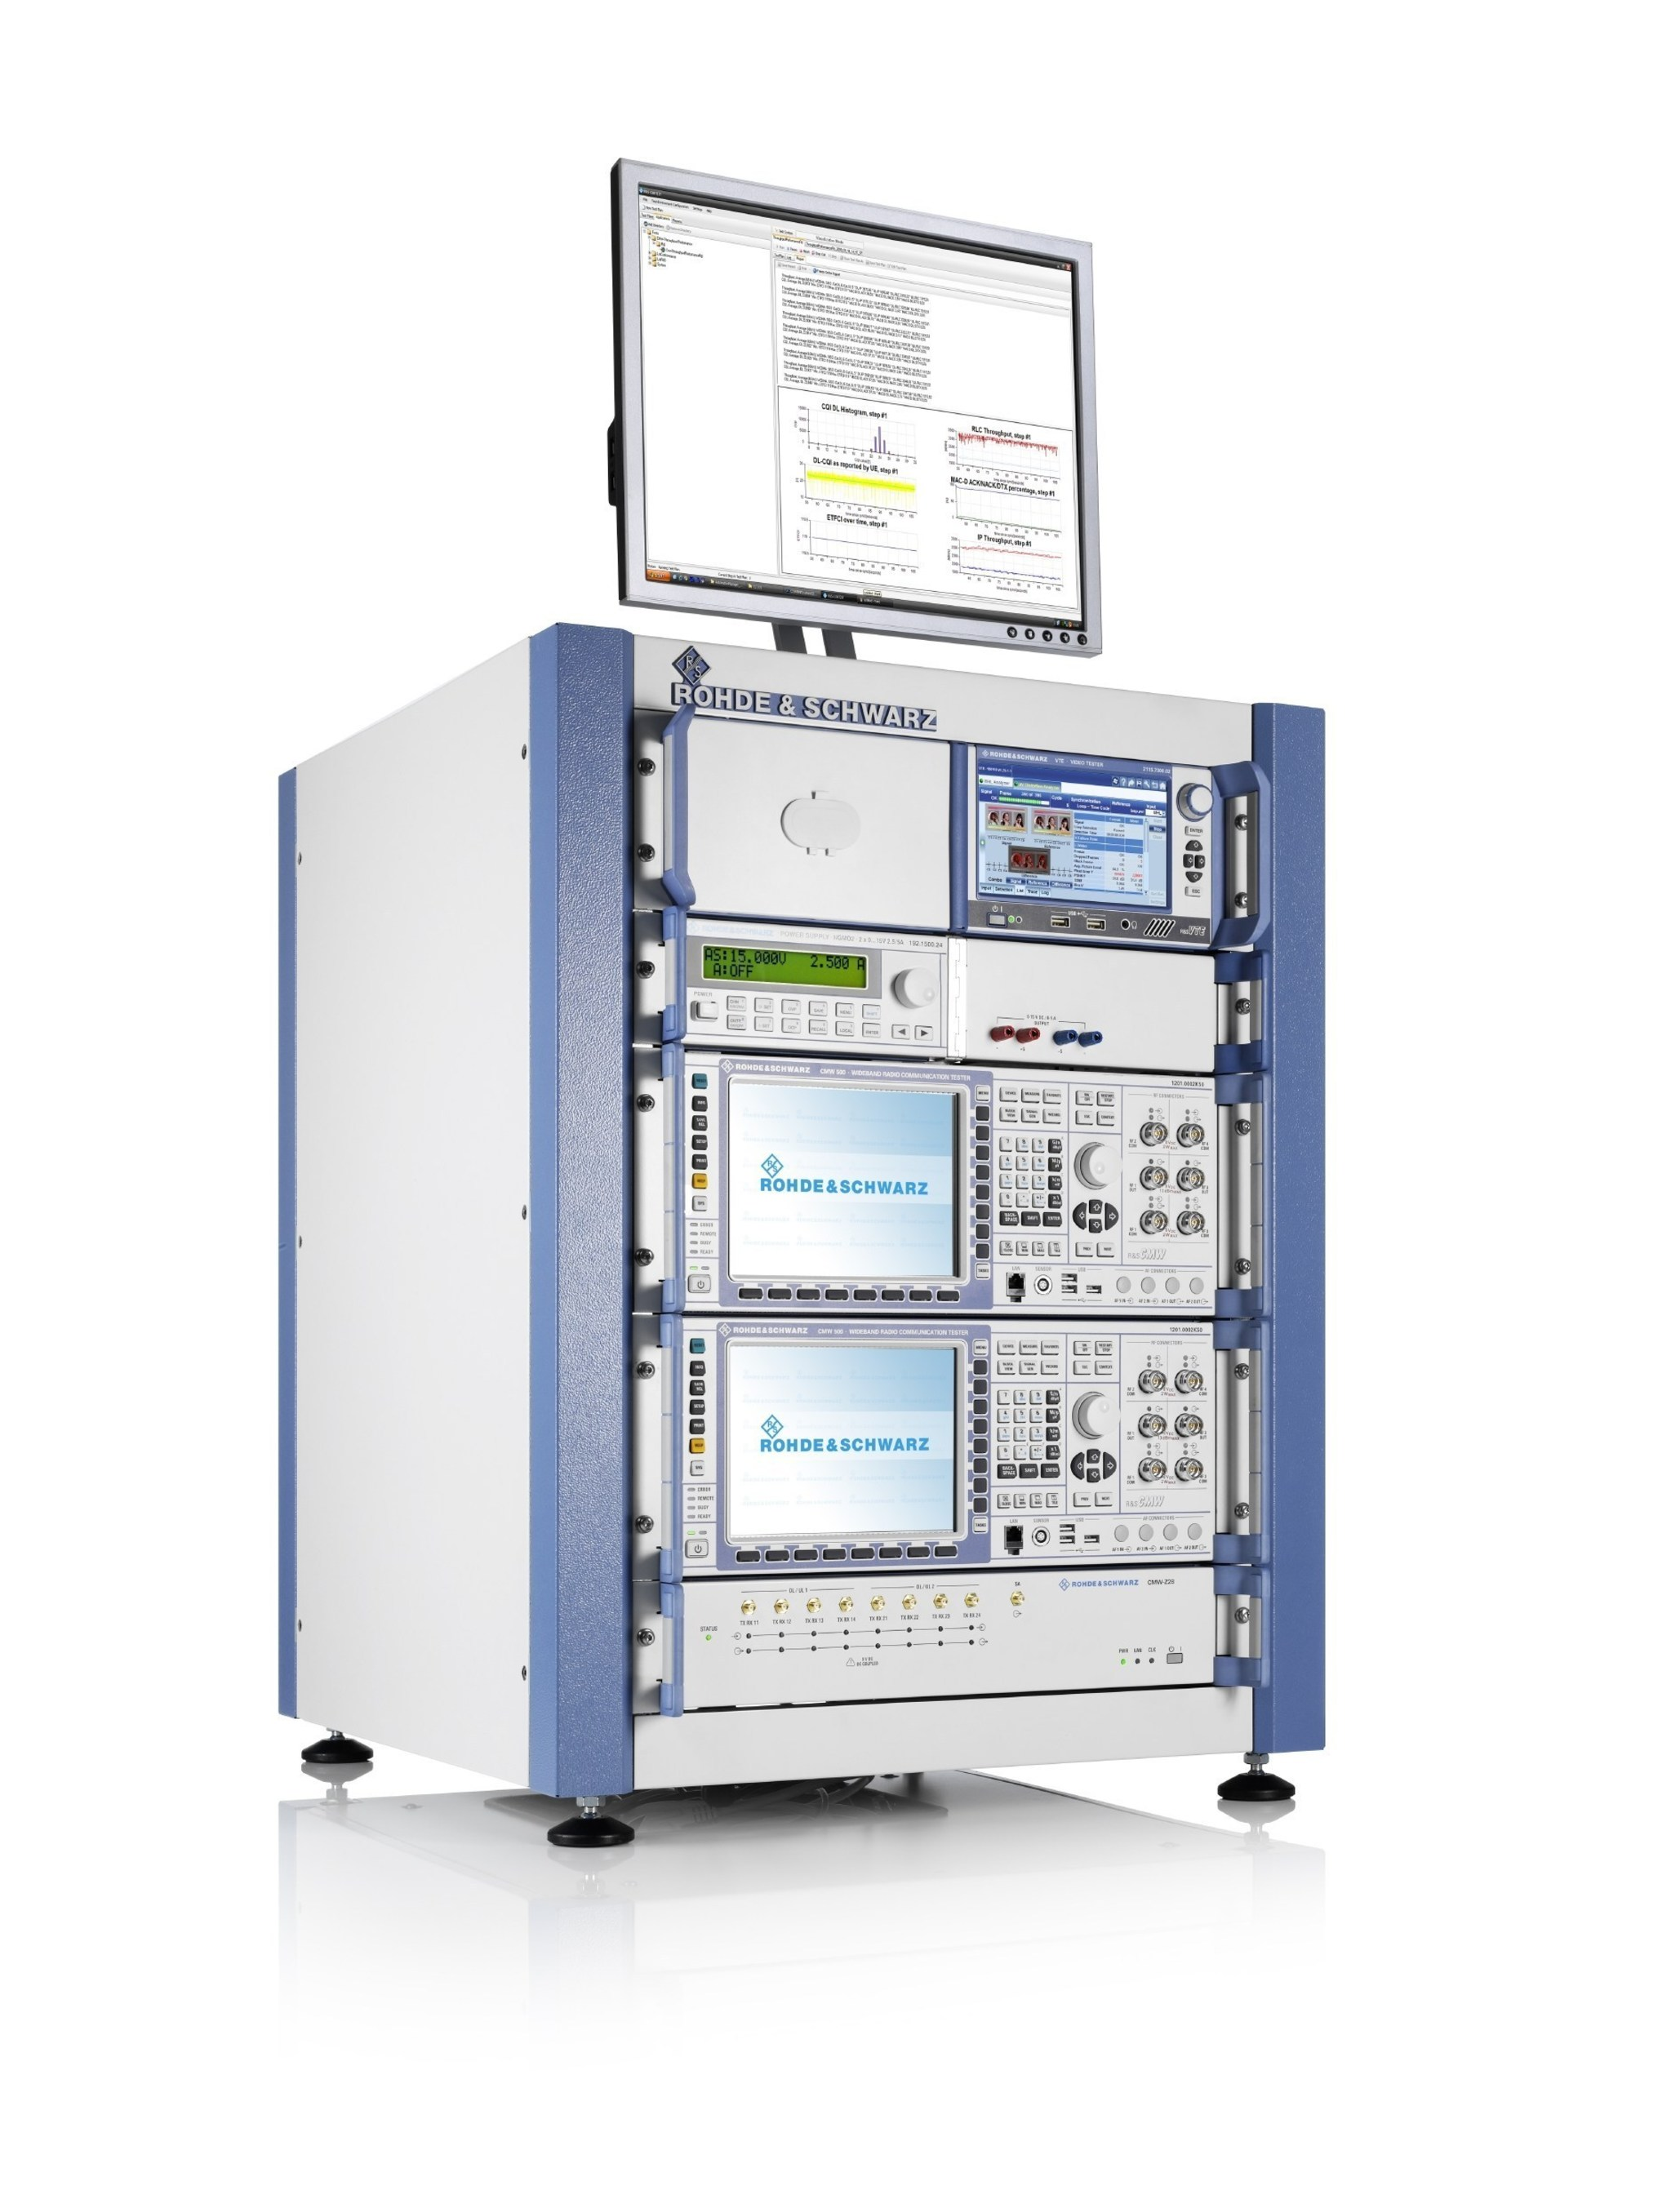 7Layers Enhances Its 4G/LTE Device Testing Capabilities With Rohde & Schwarz